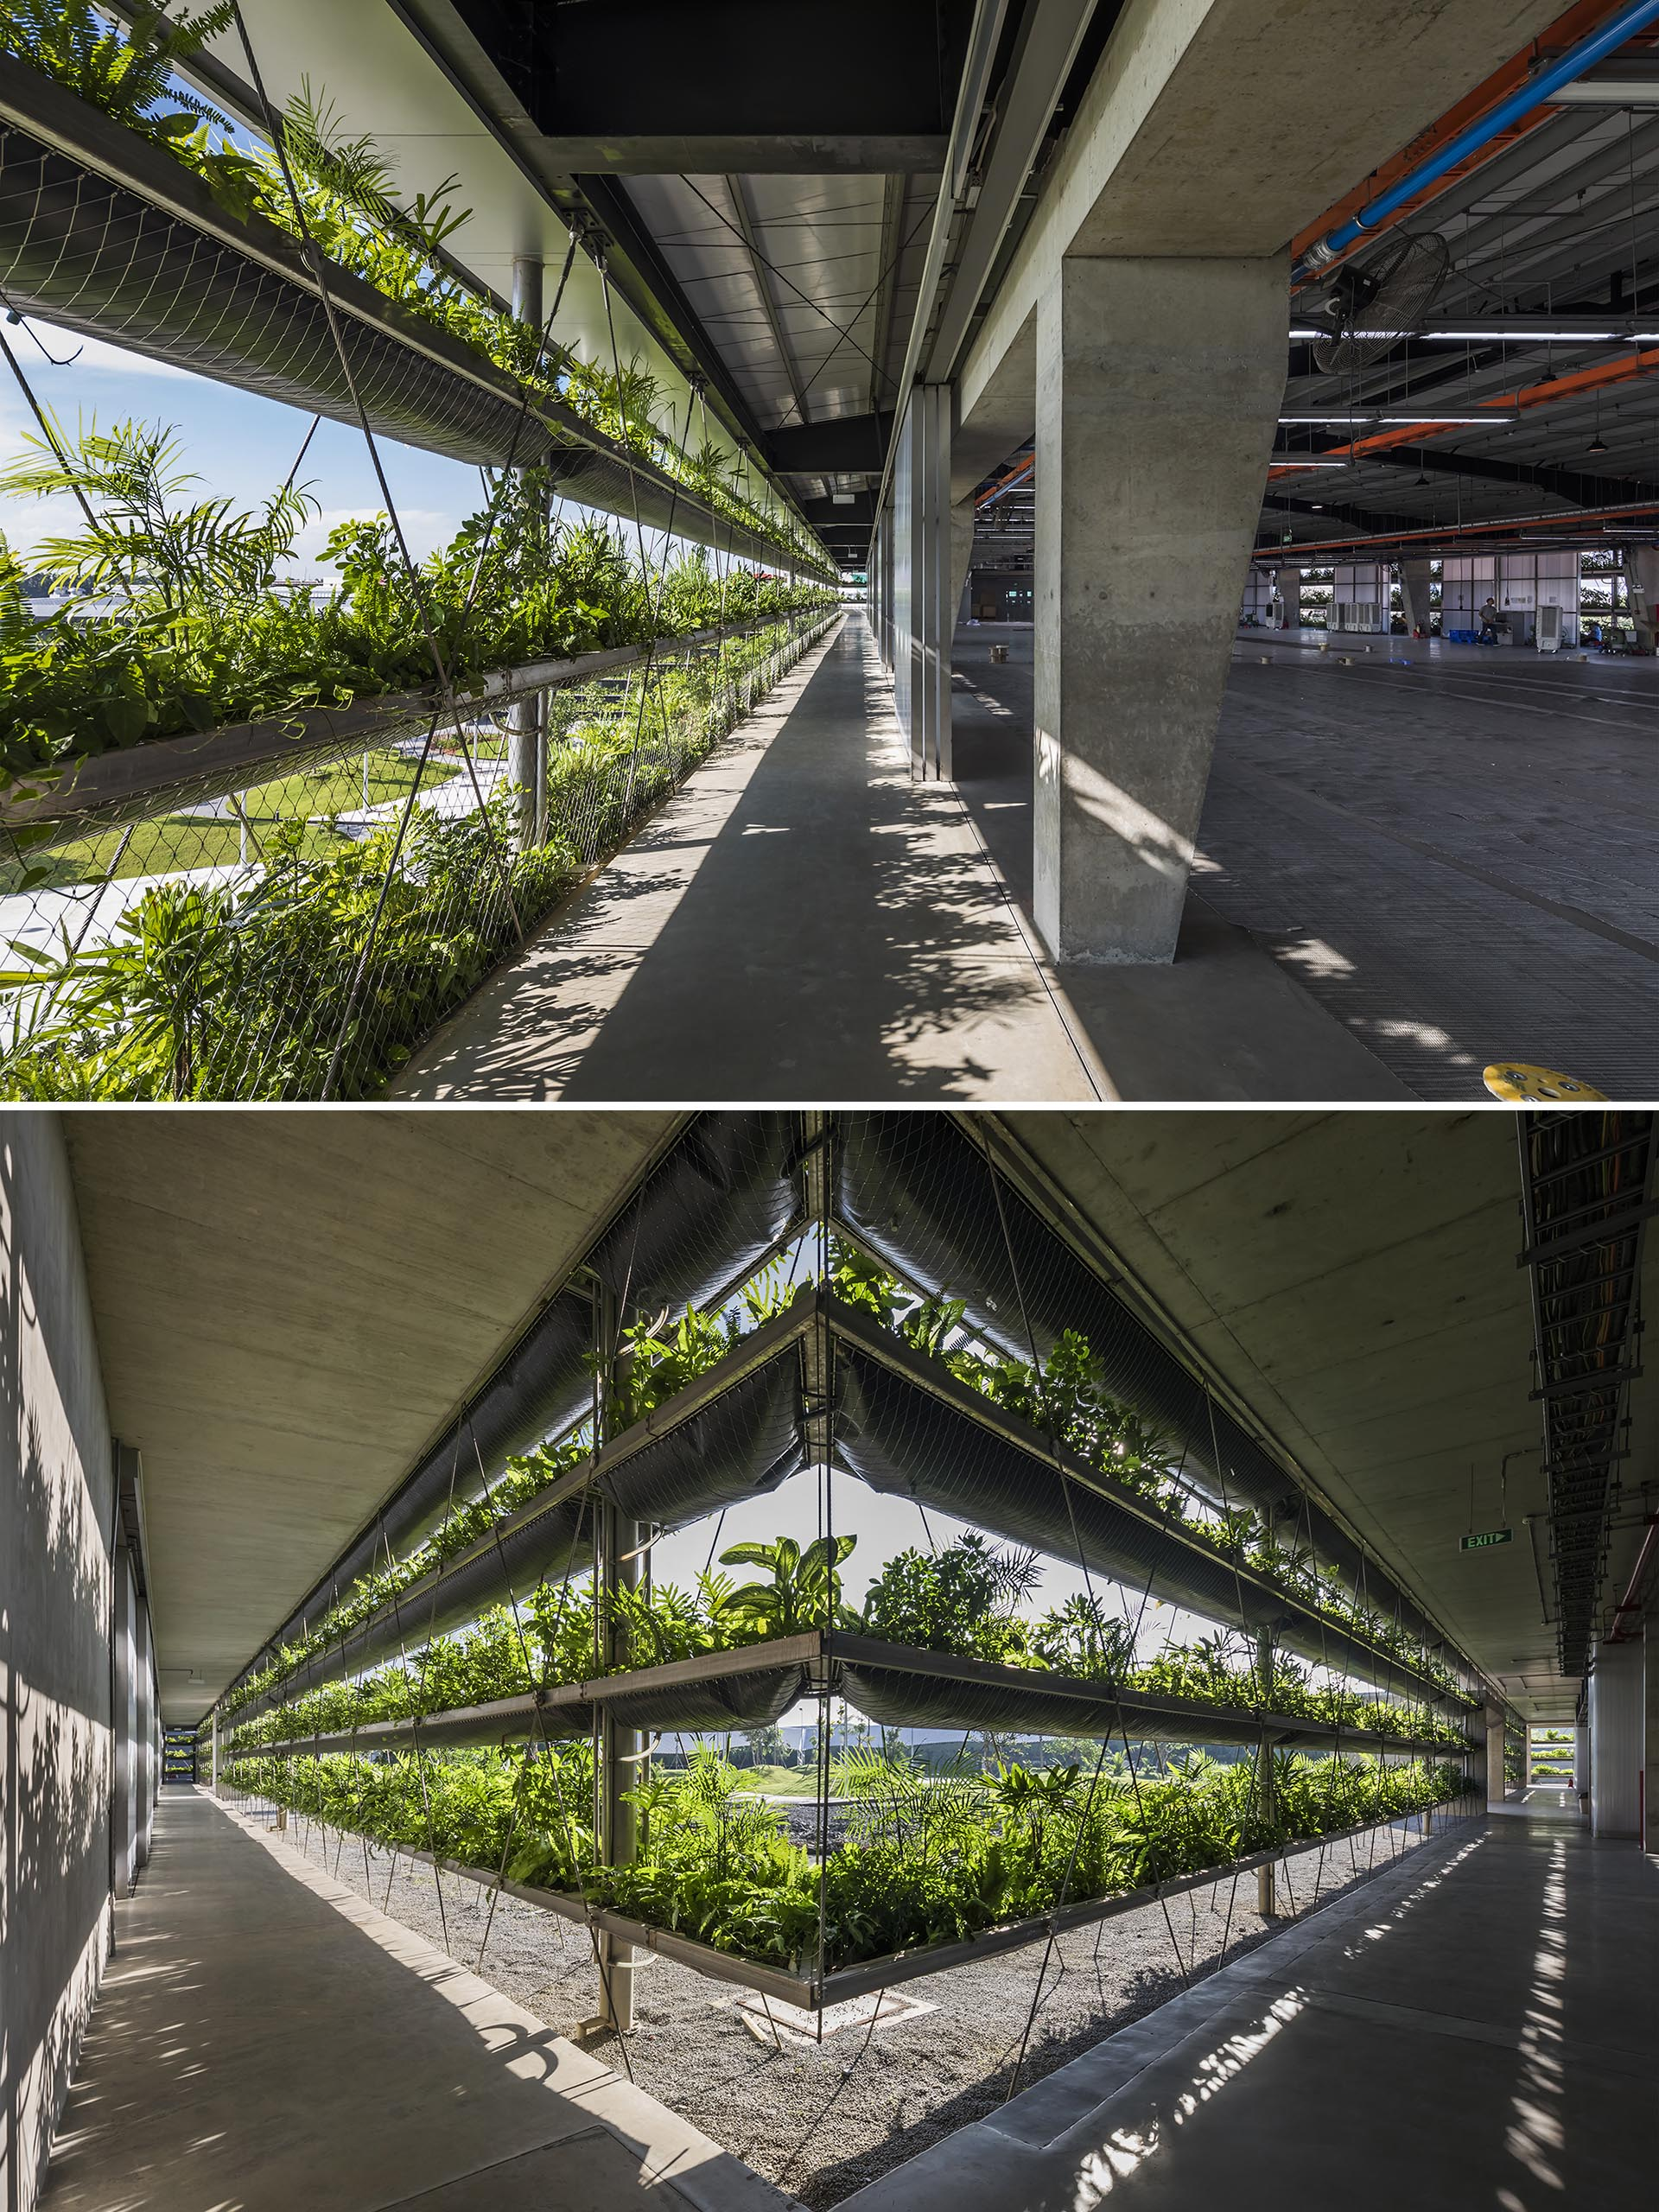 Rows of plants help with temperature and air quality inside a factory.